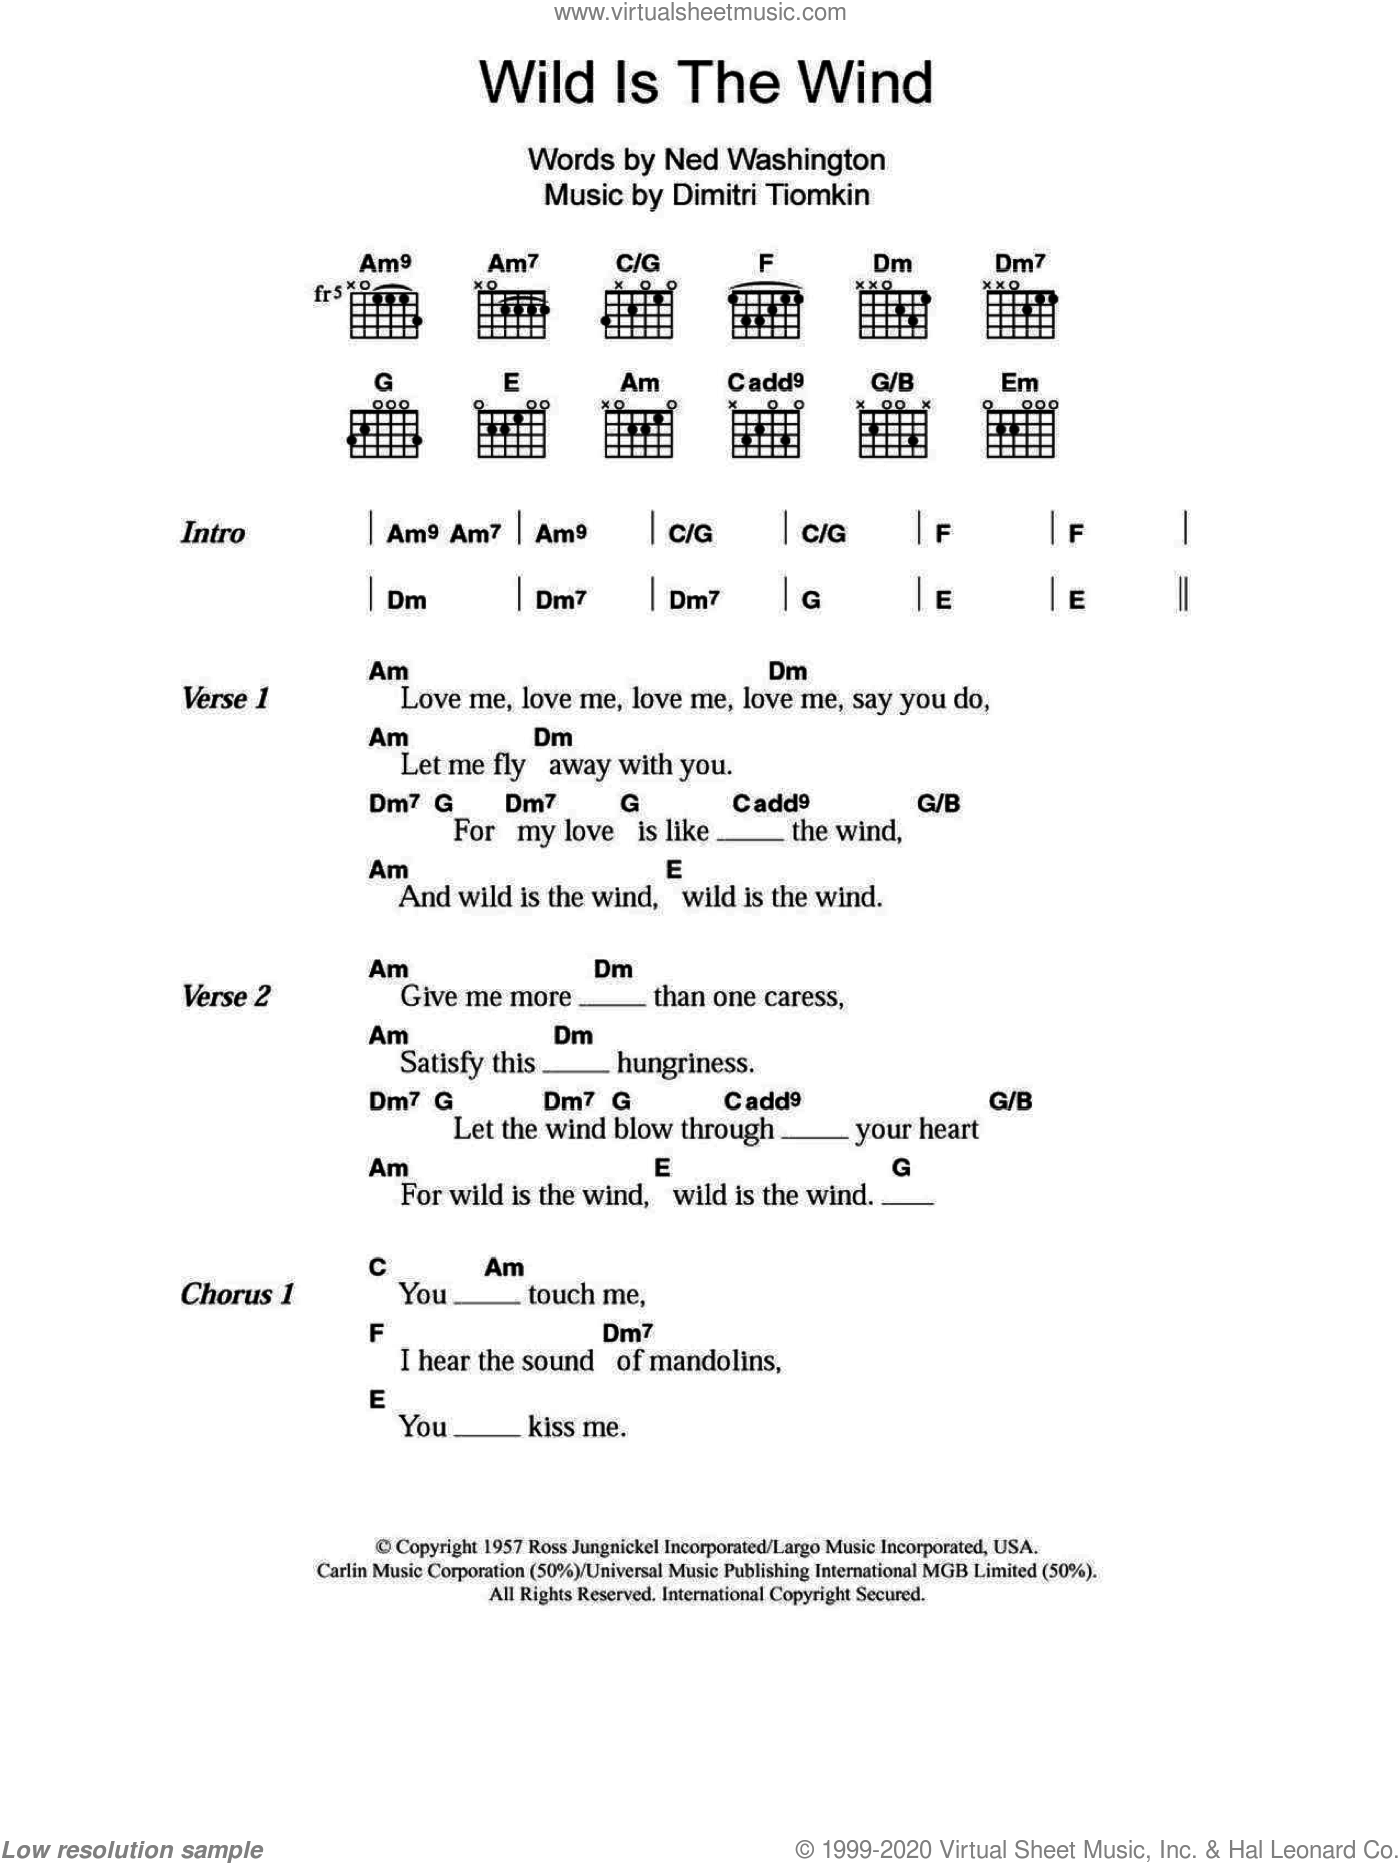 Simone - Wild Is The Wind sheet music for guitar (chords) [PDF]